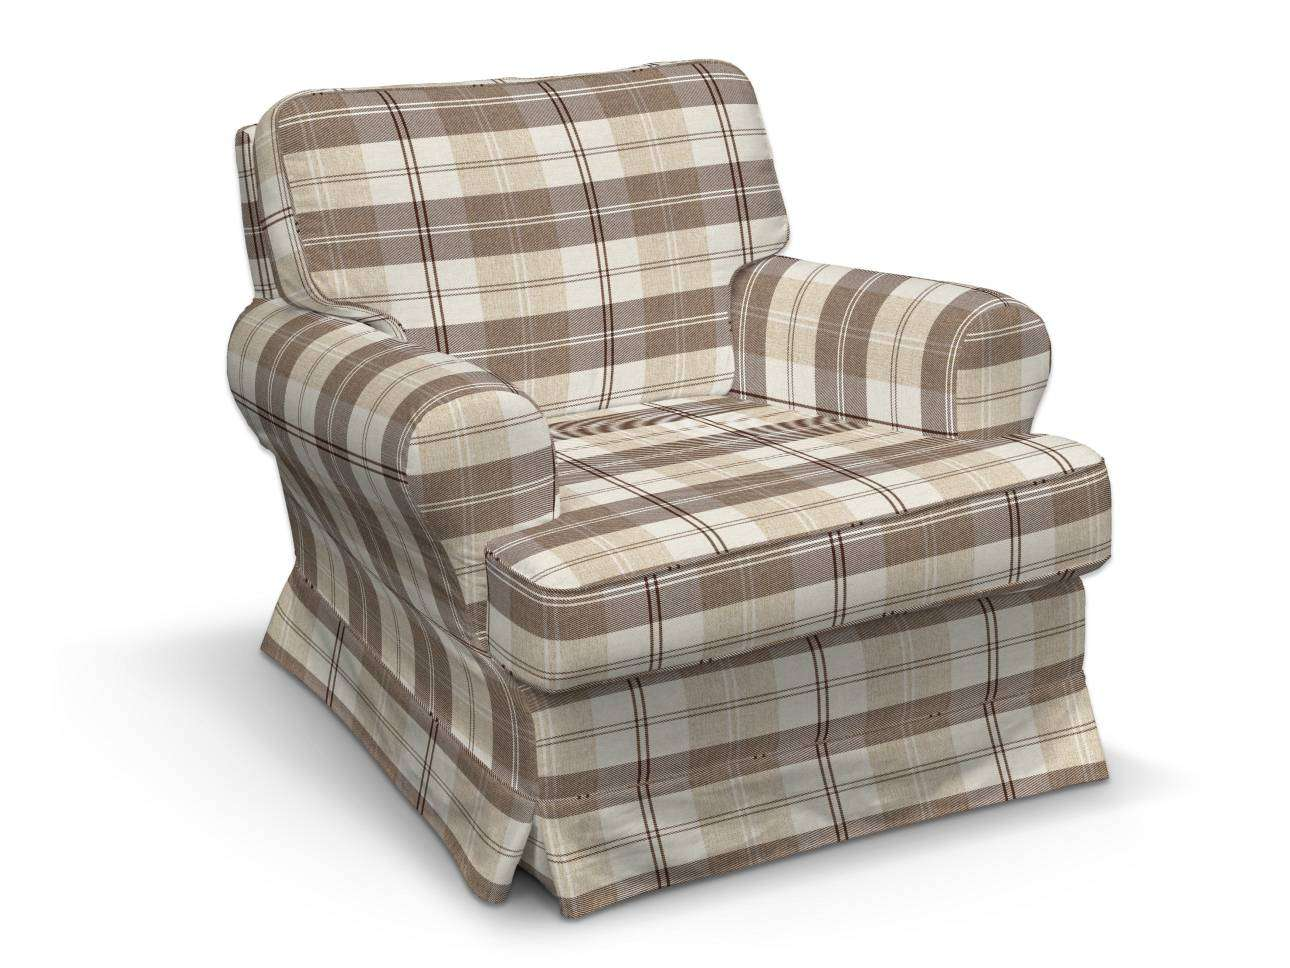 Barkaby armchair cover in collection Edinburgh, fabric: 115-80